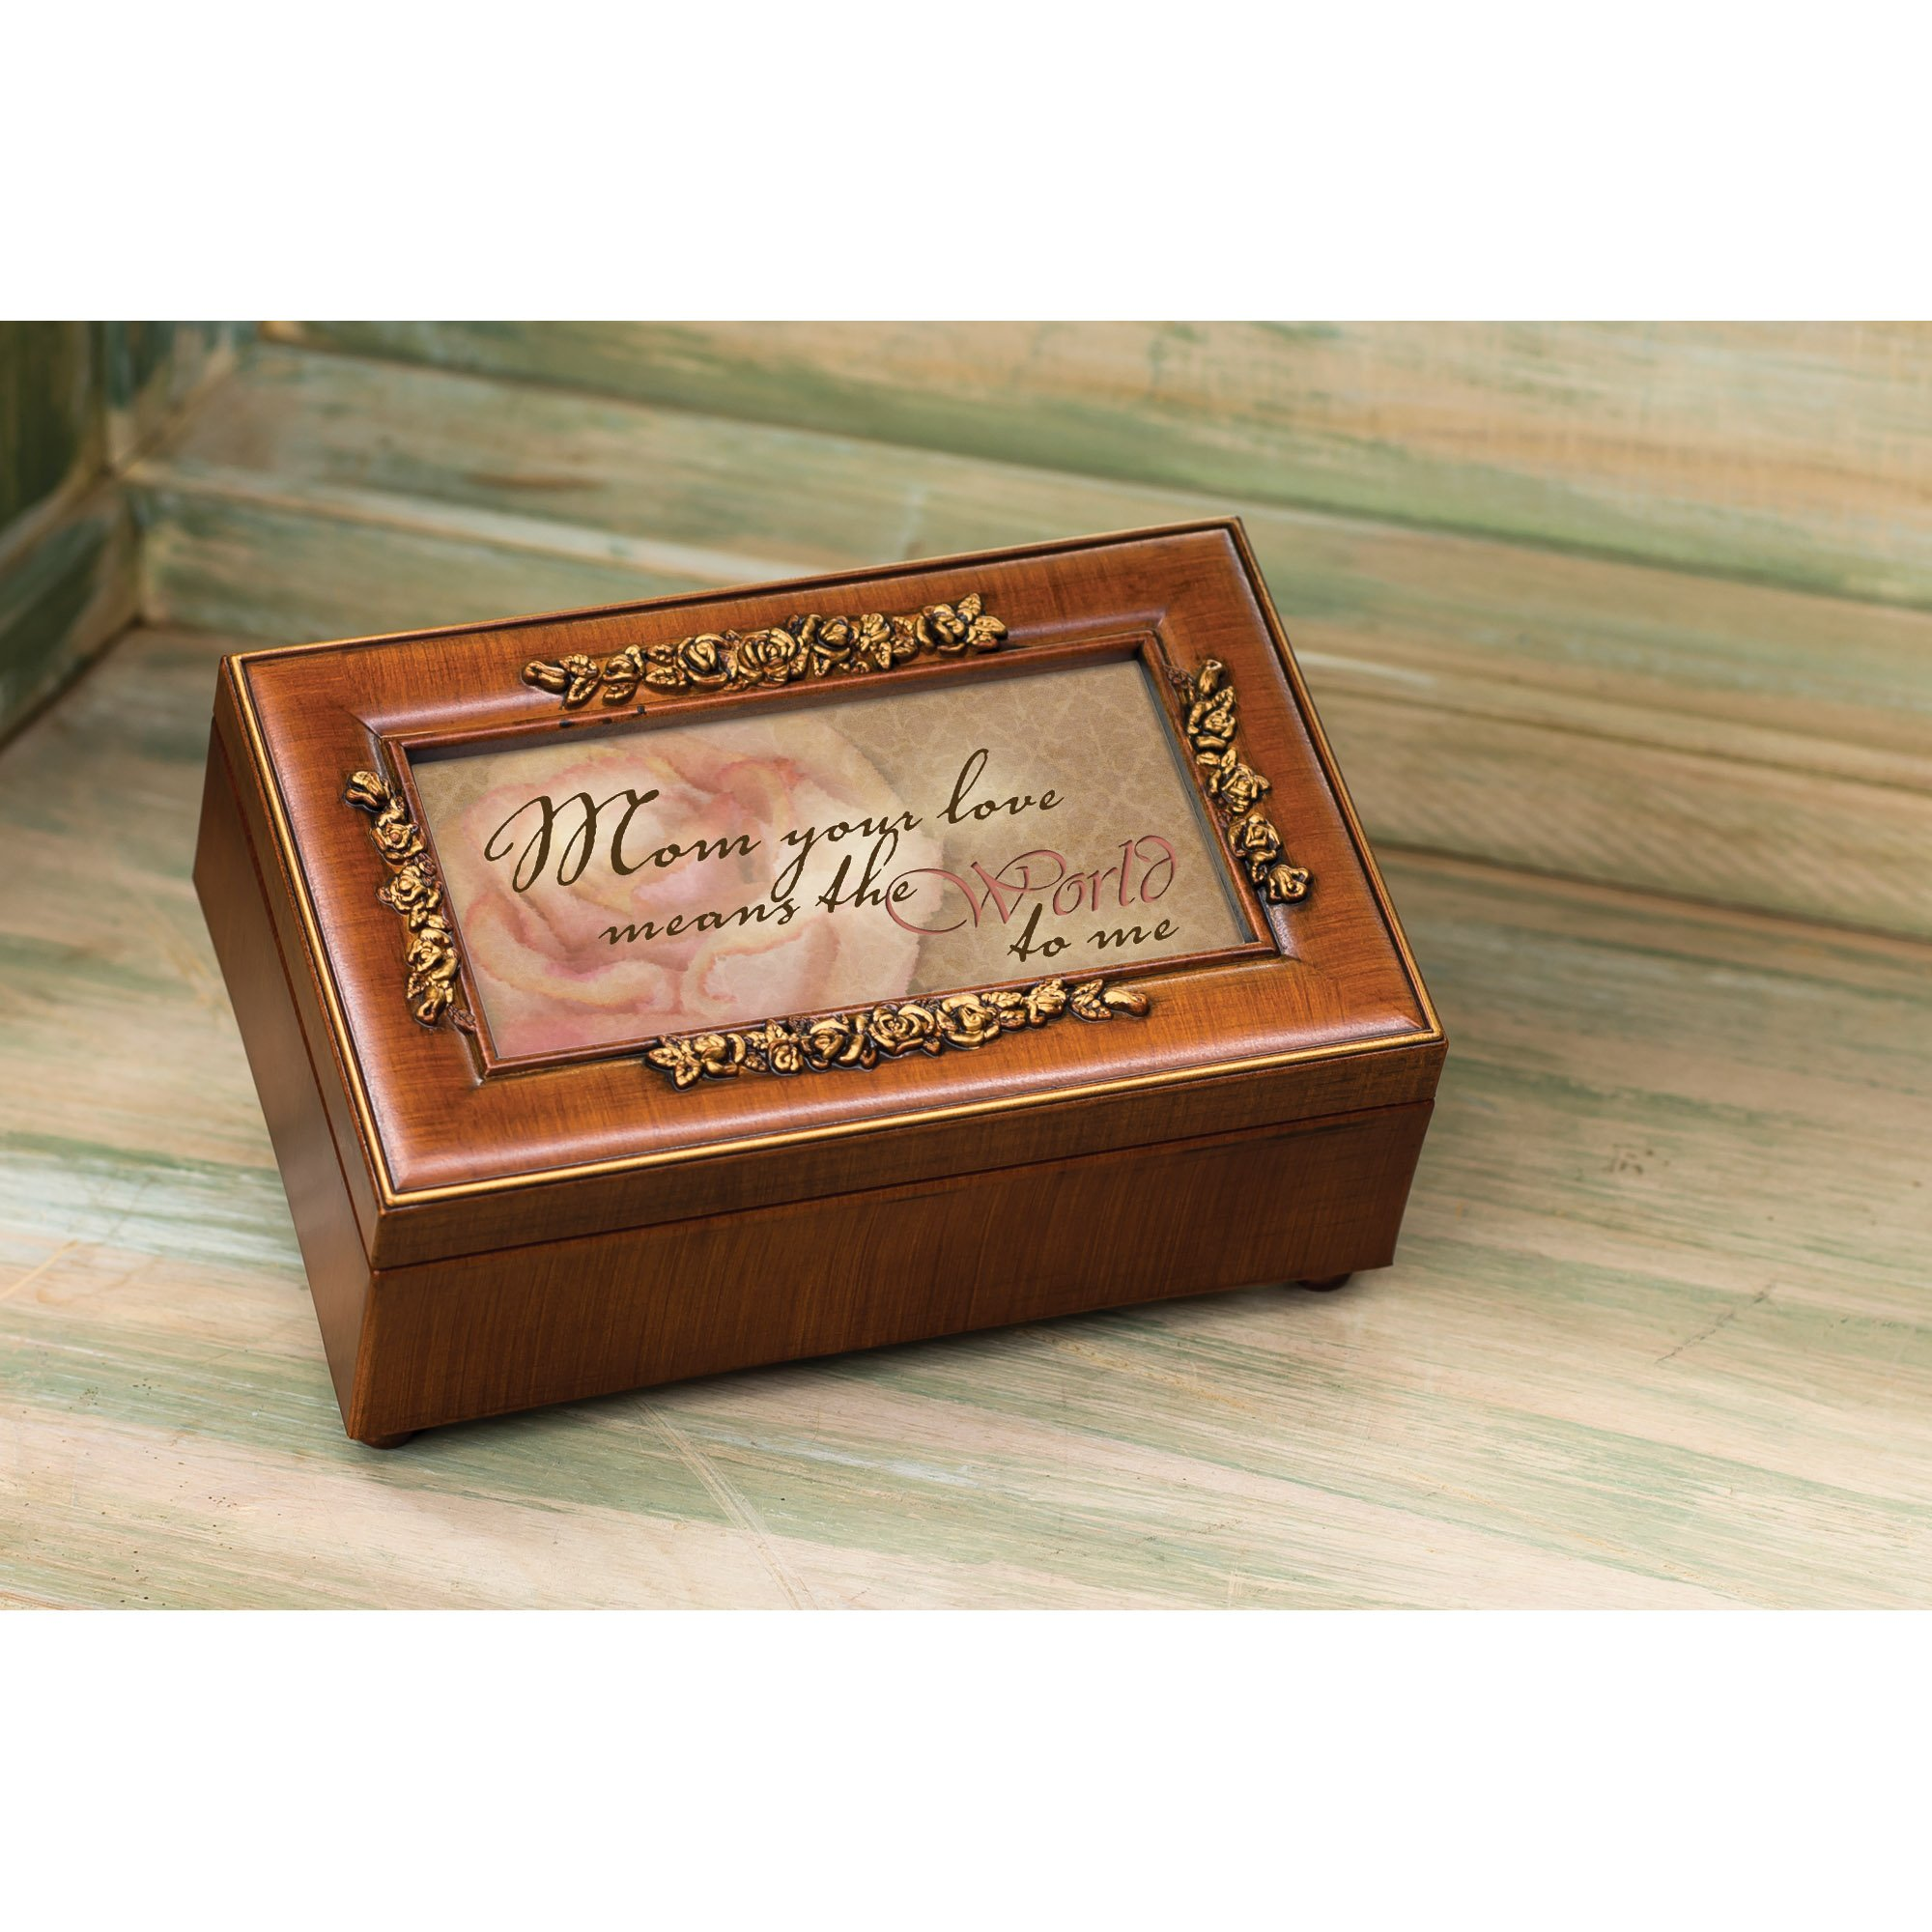 Mom Your Love Wood Finish Rose Jewelry Music Box - Plays Tune Wind Beneath My Wings by Cottage Garden (Image #5)